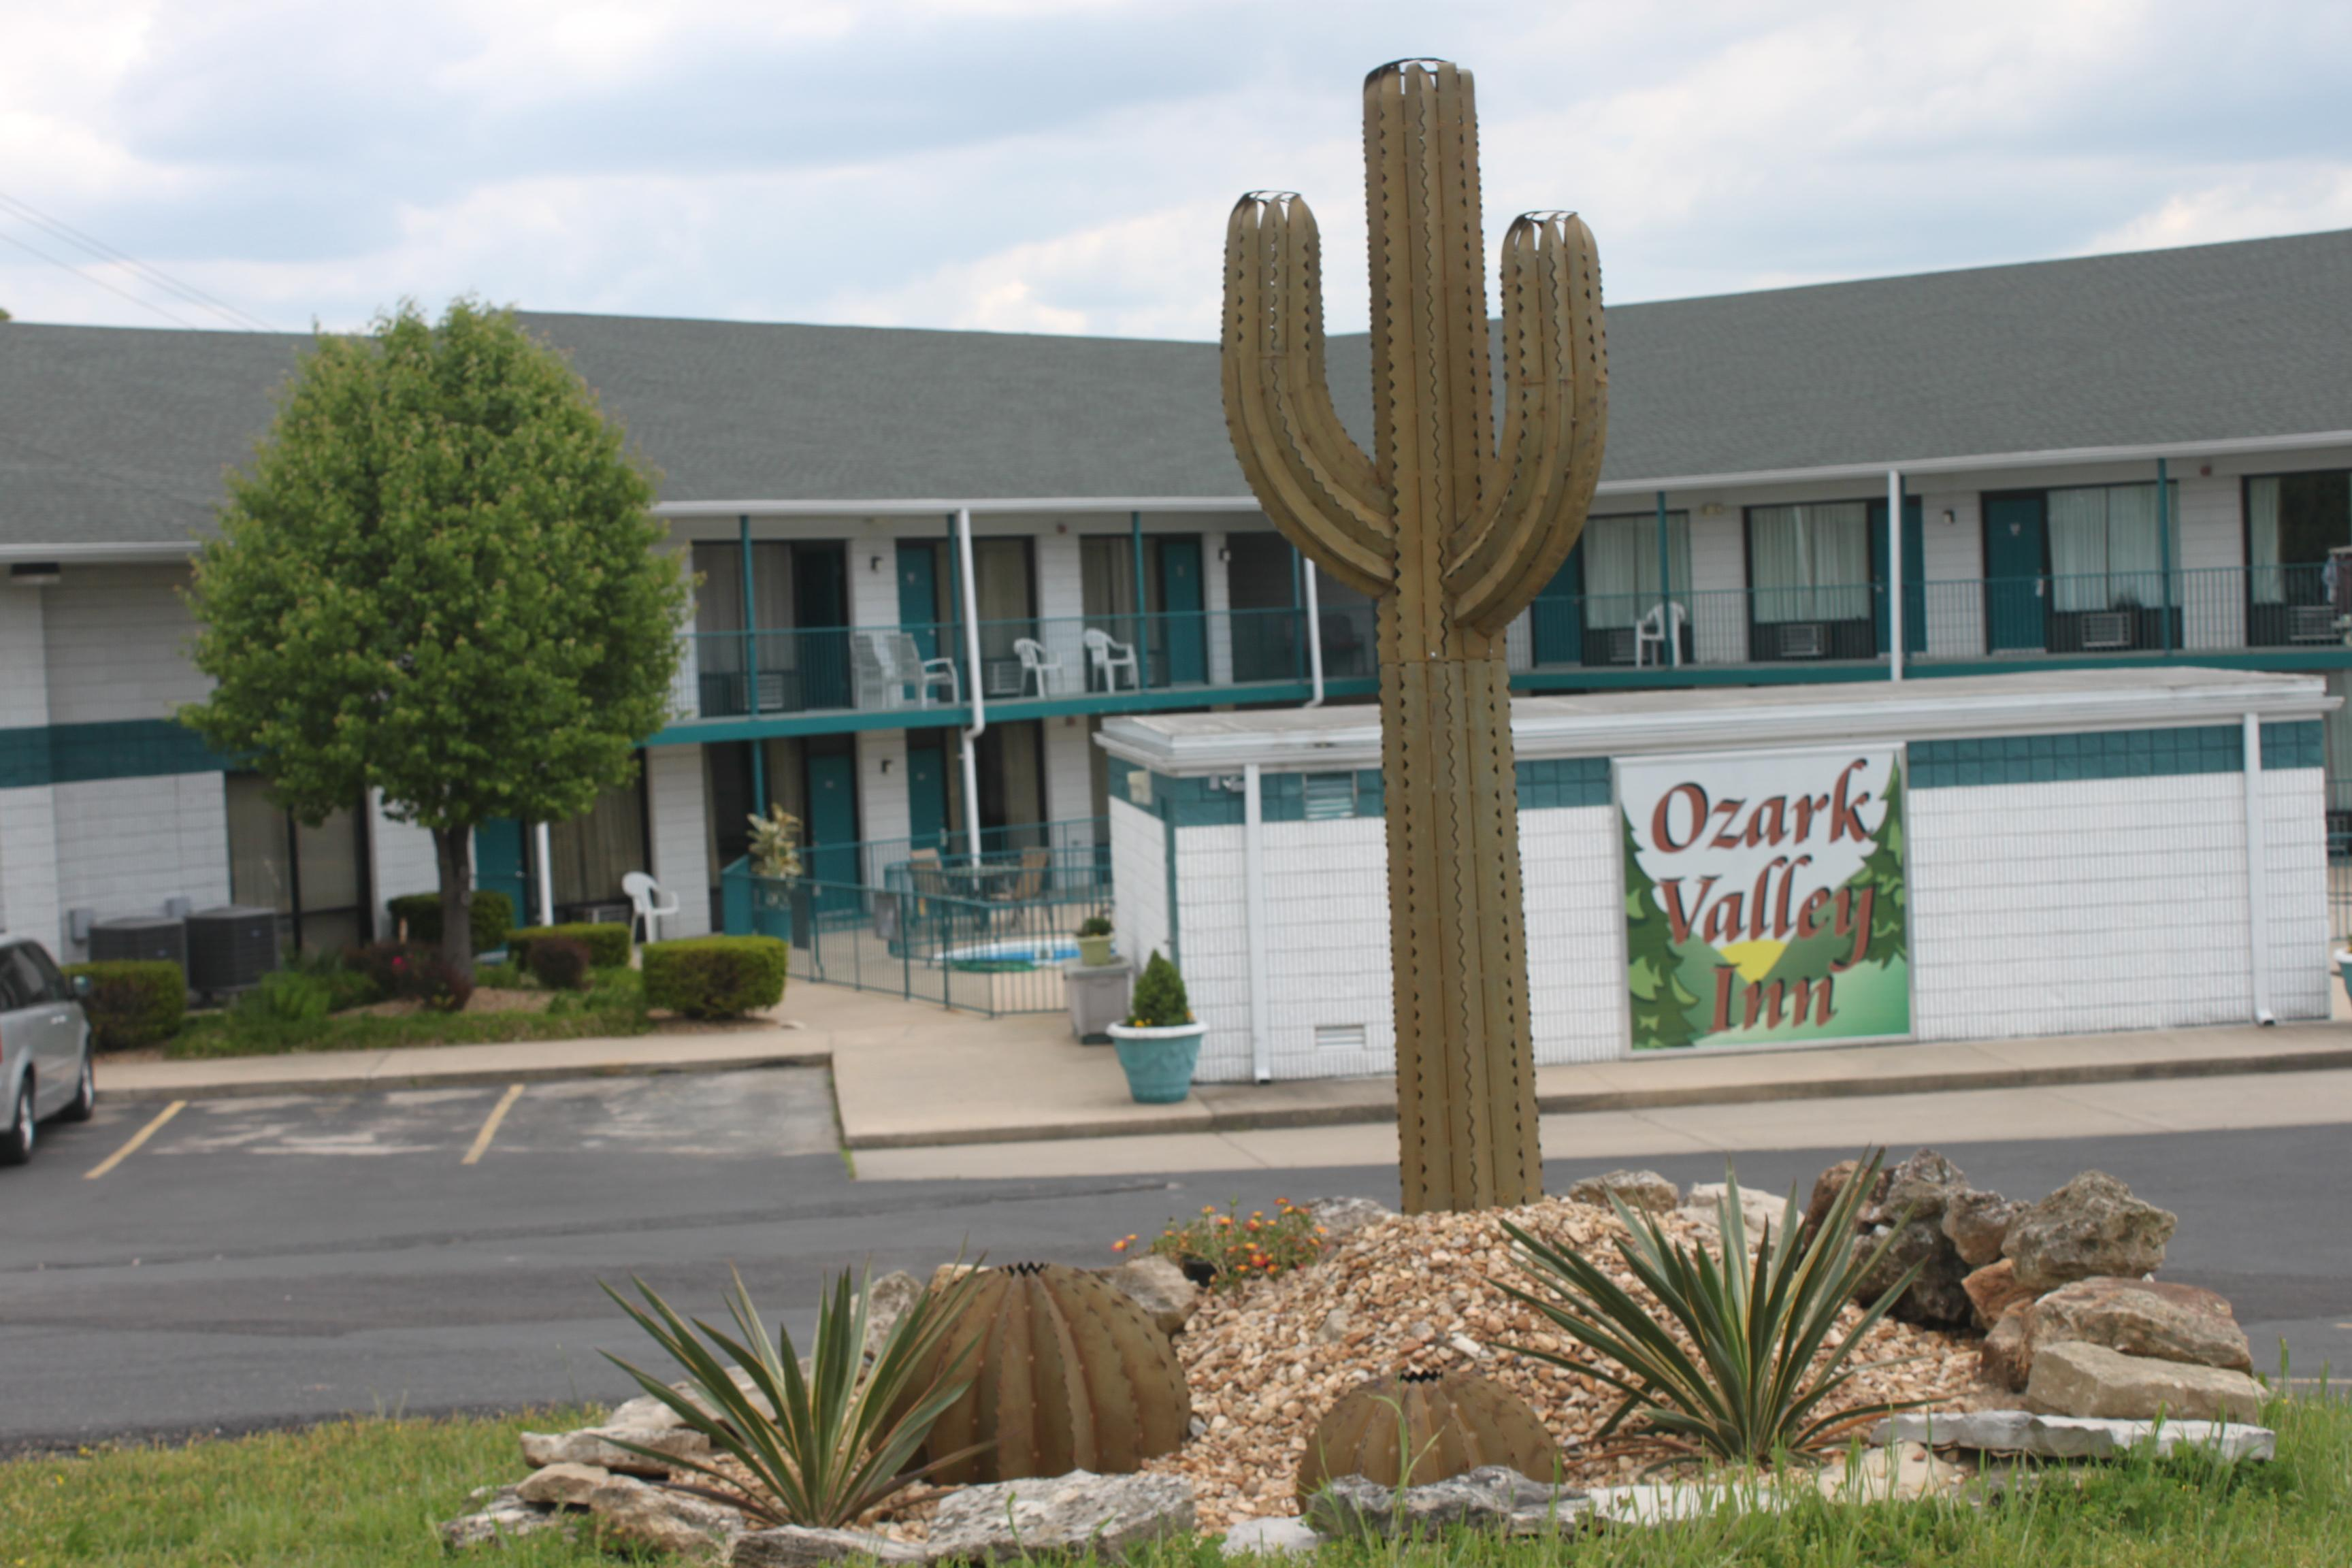 Ozark Valley Inn